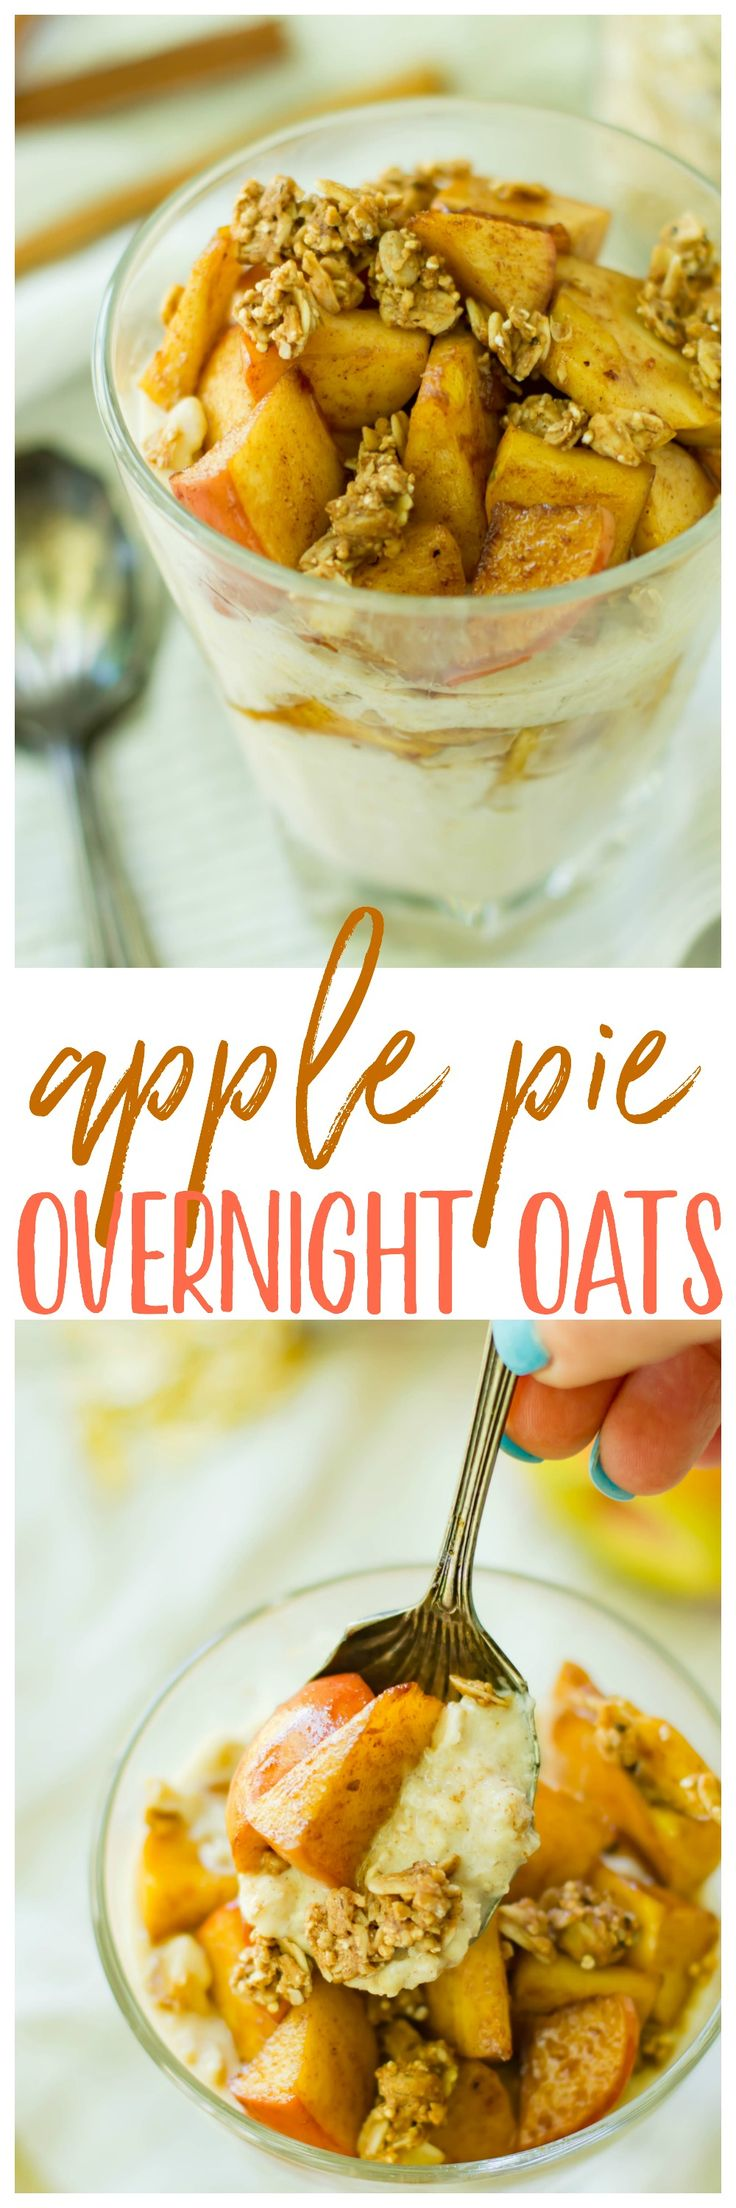 Start the day off right with easy, delicious Apple Pie Overnight Oats and your Renew Life Ultimate Flora Probiotics! The perfect on-the-go back to school meal that can be made in advance with a little boost on the side! AD